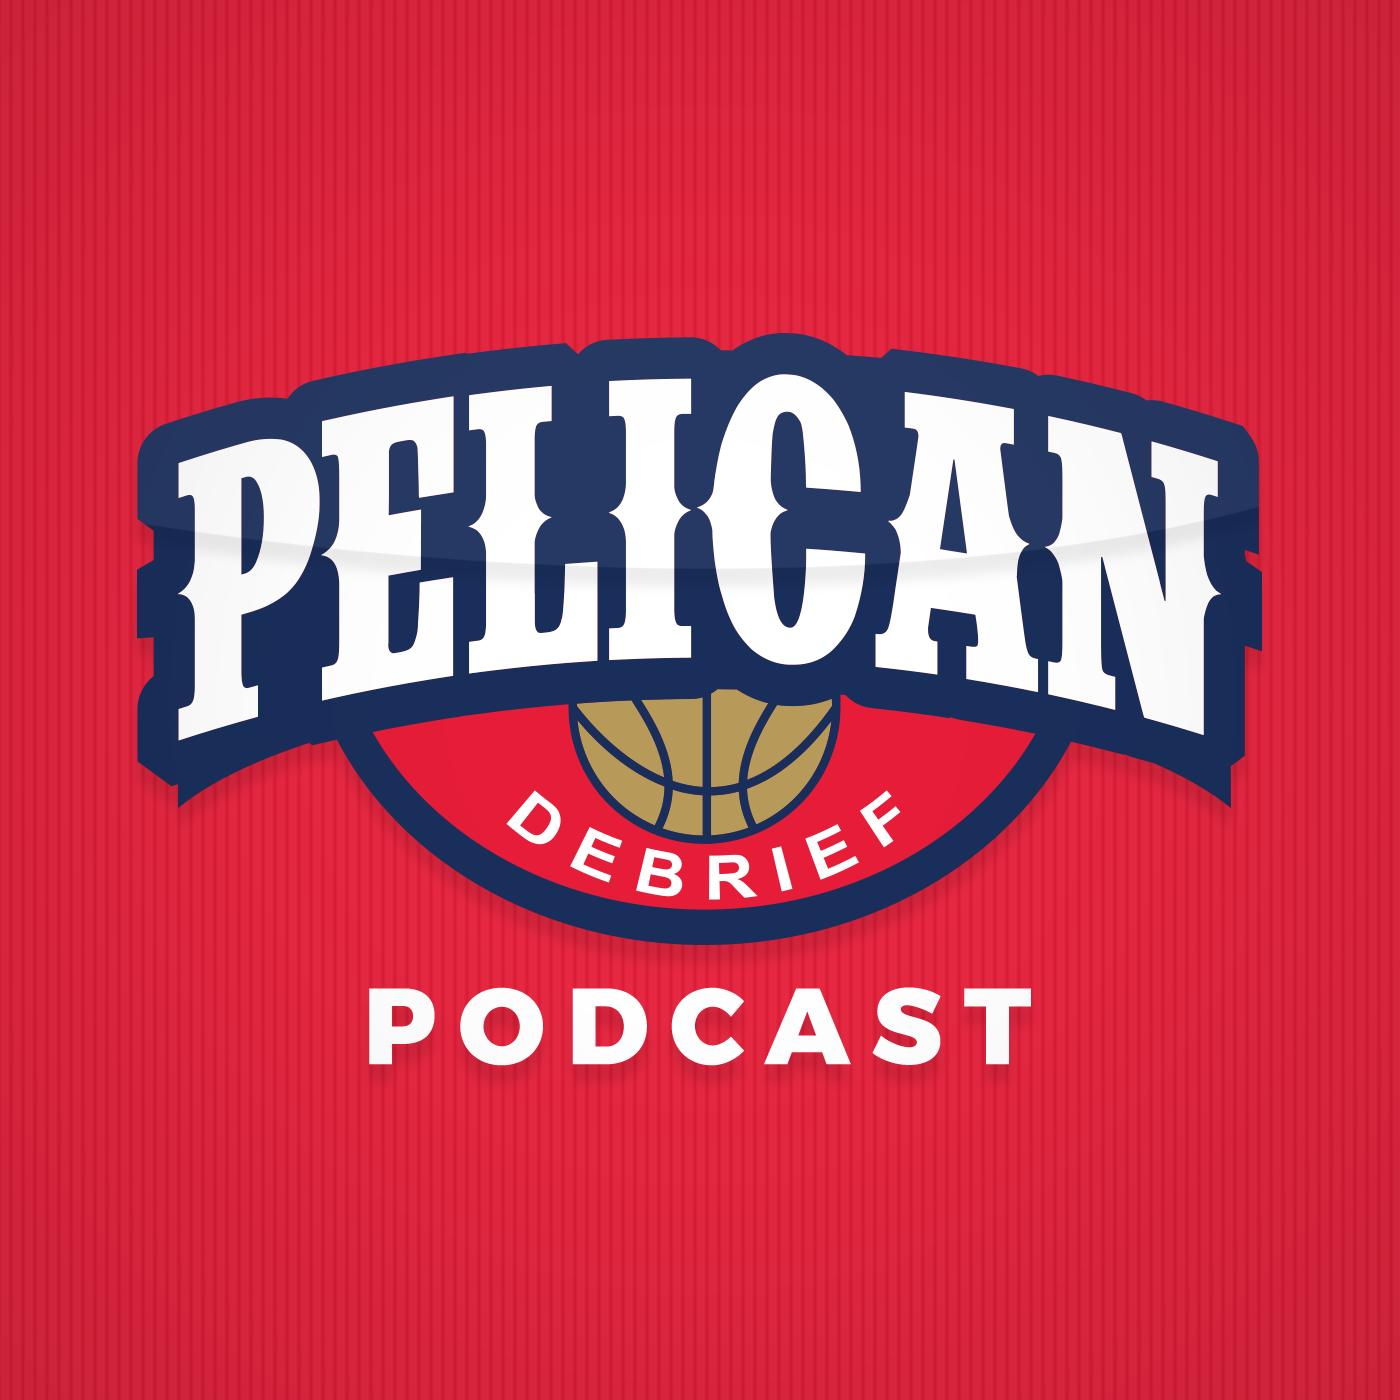 Pelican Debrief Podcast